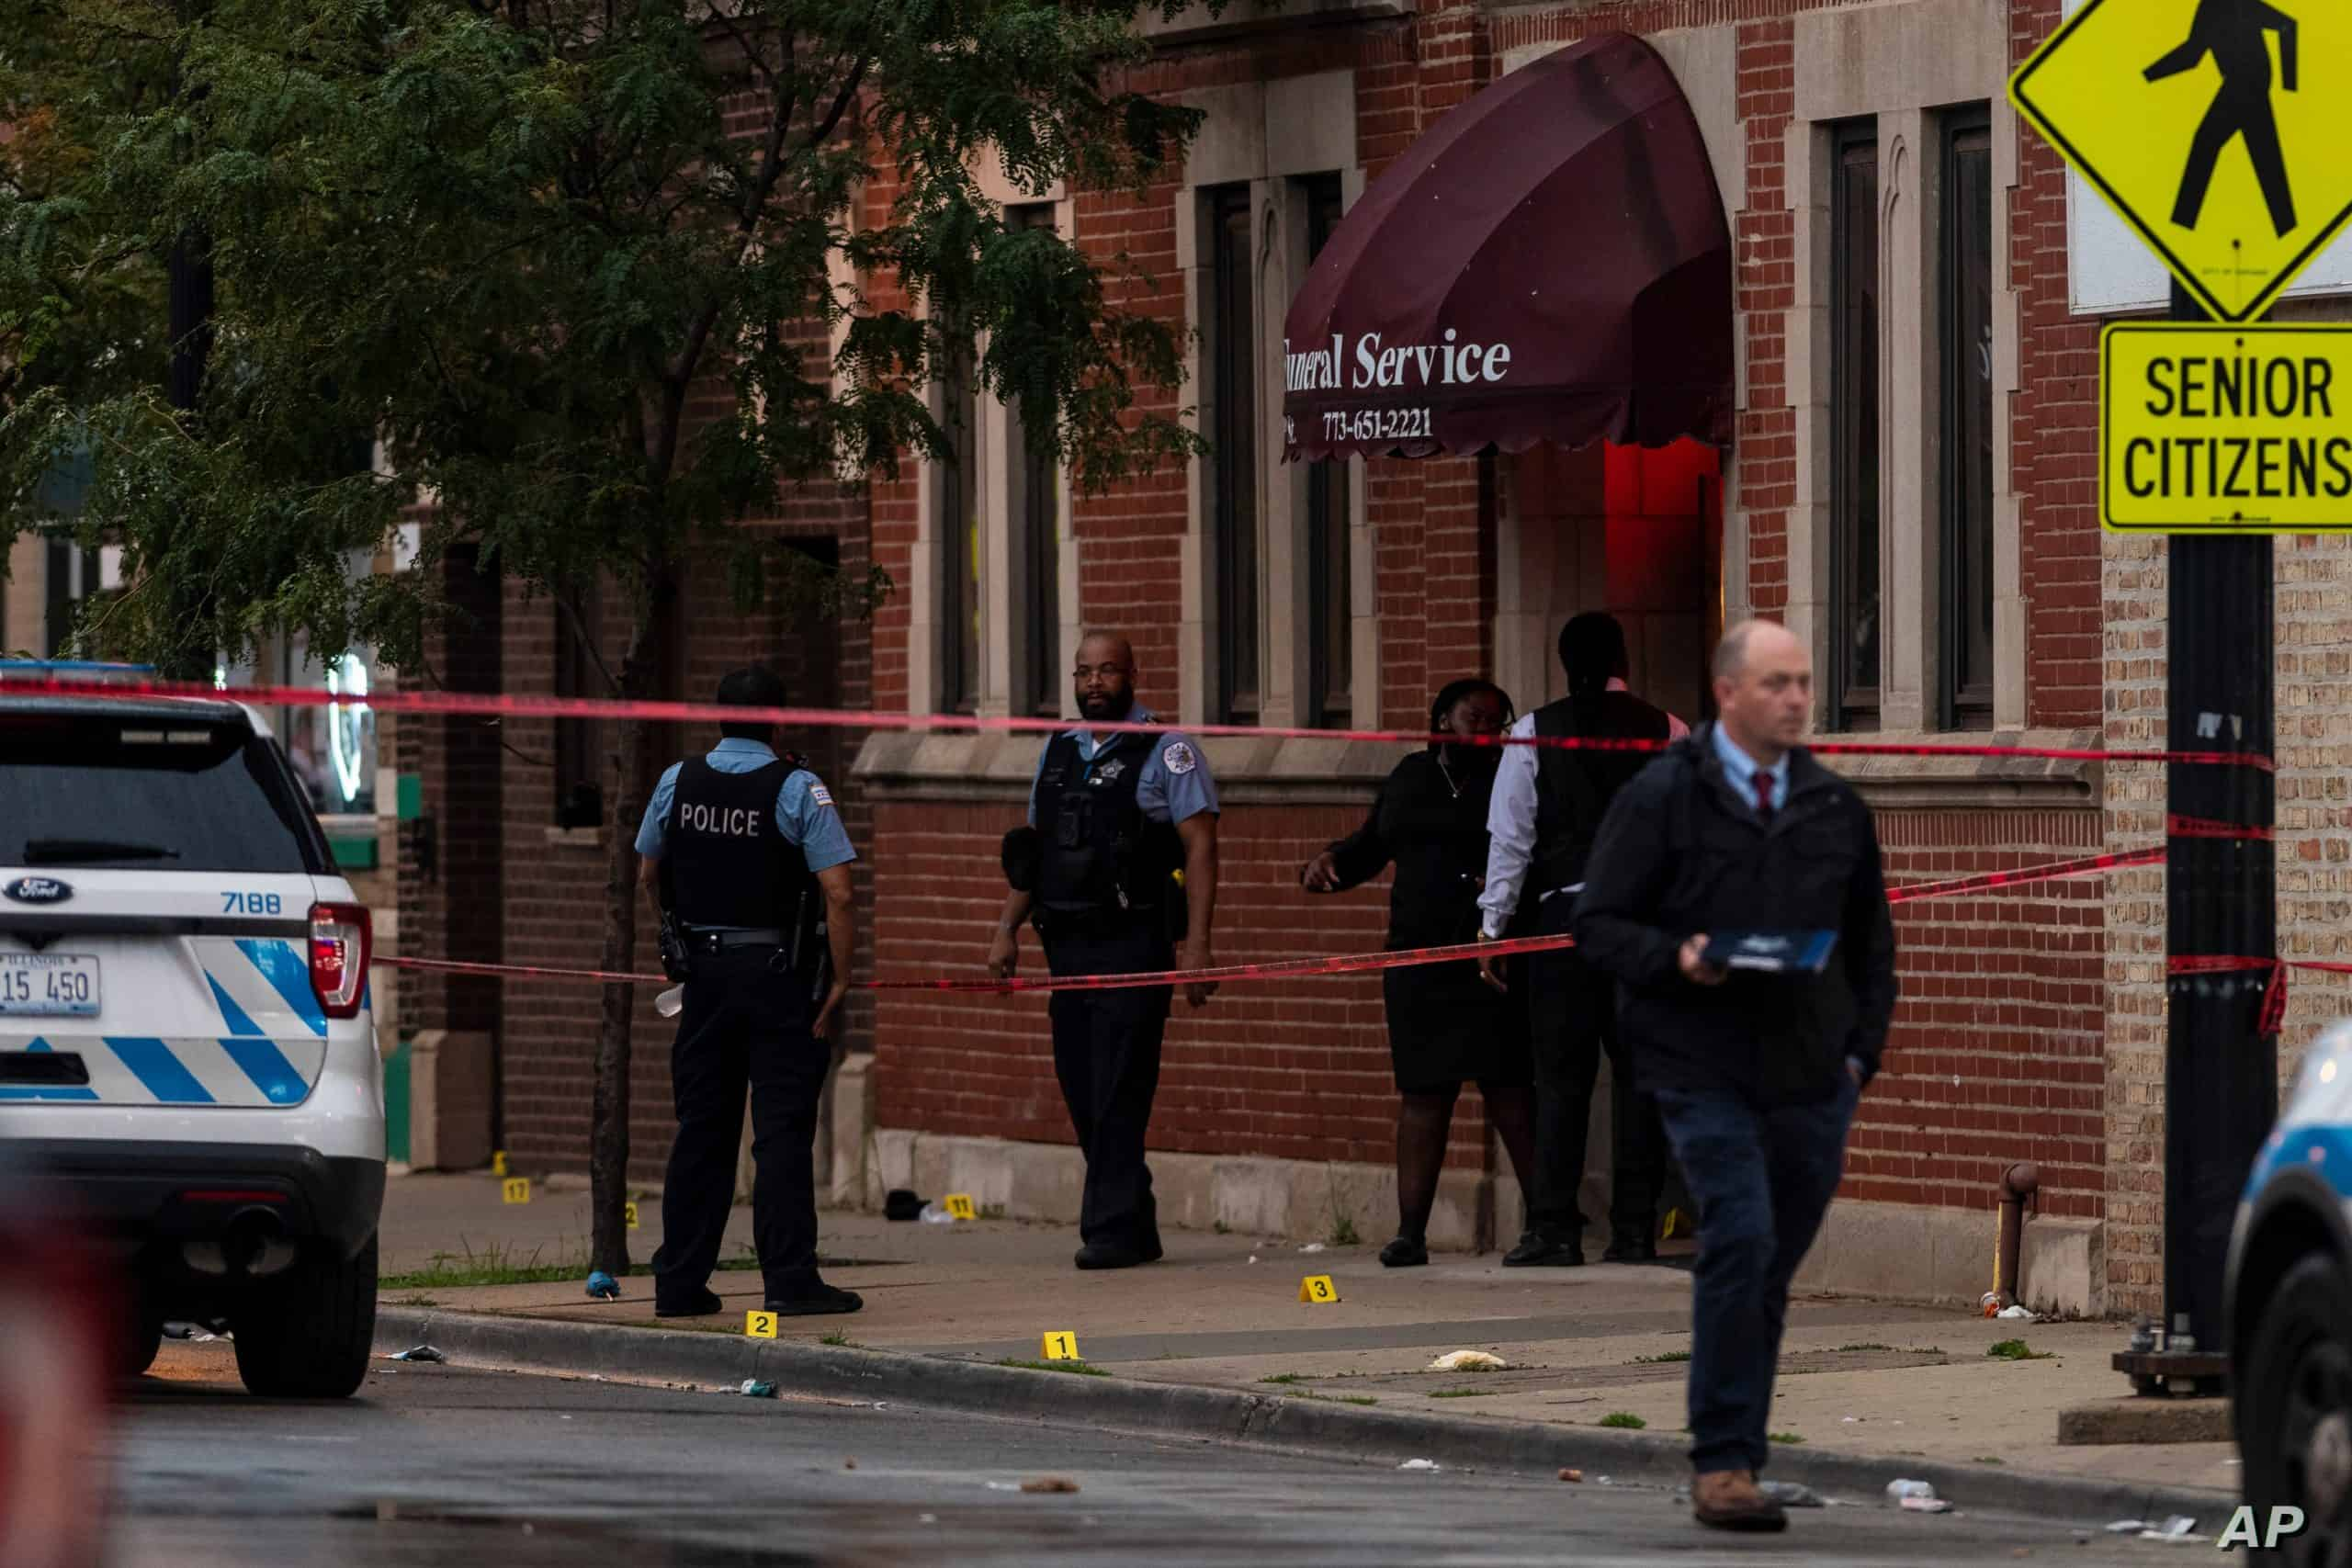 An increase in the homicides amid the pandemic is the cause of concern in Chicago